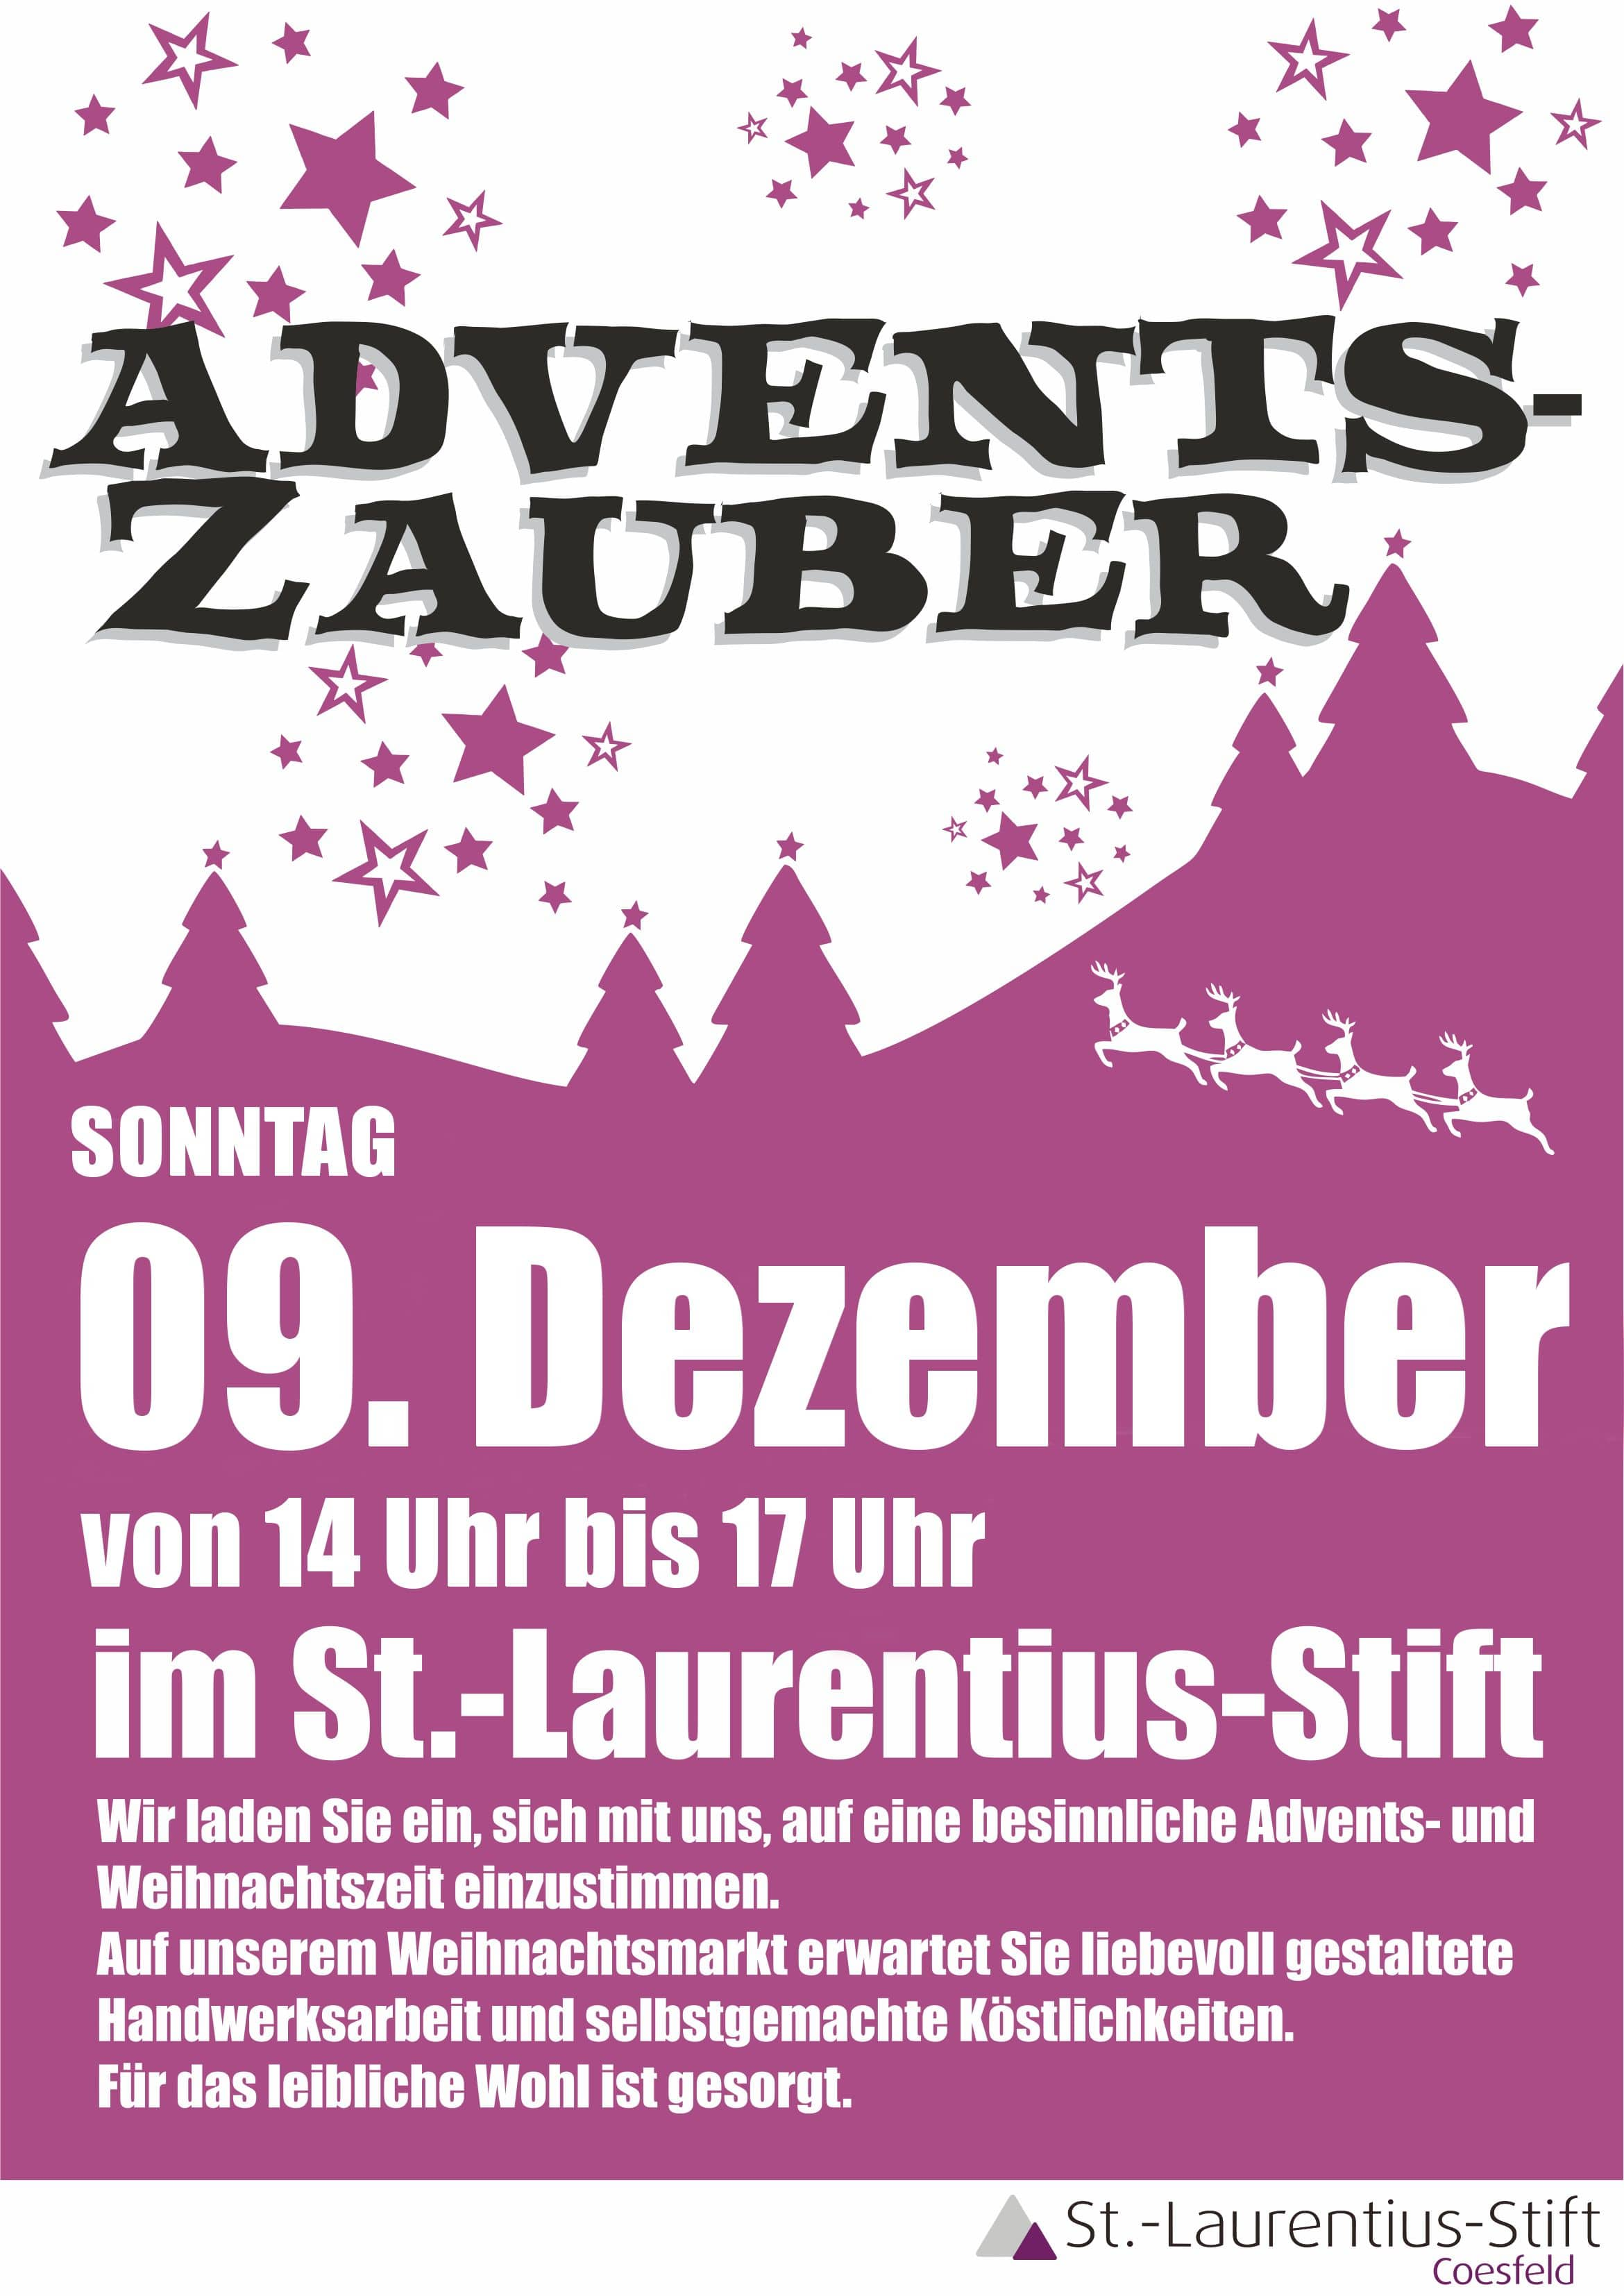 Adventszauber St.-Laurentius-Stift